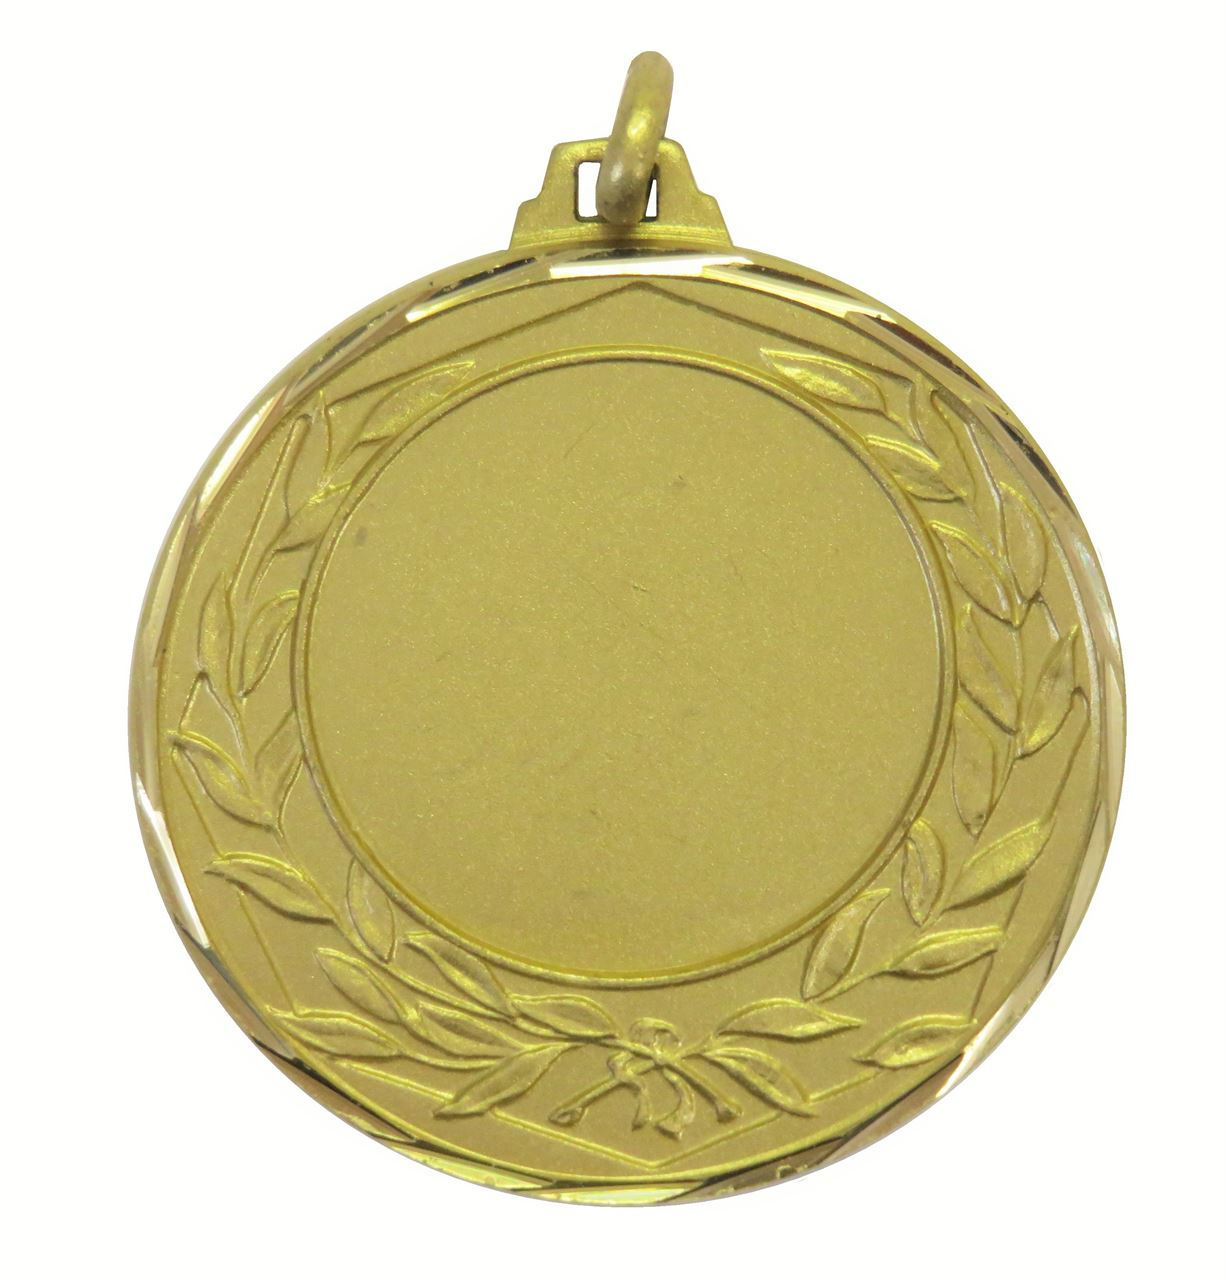 Gold Faceted Wreath Medal (size:42mm) - 5405F